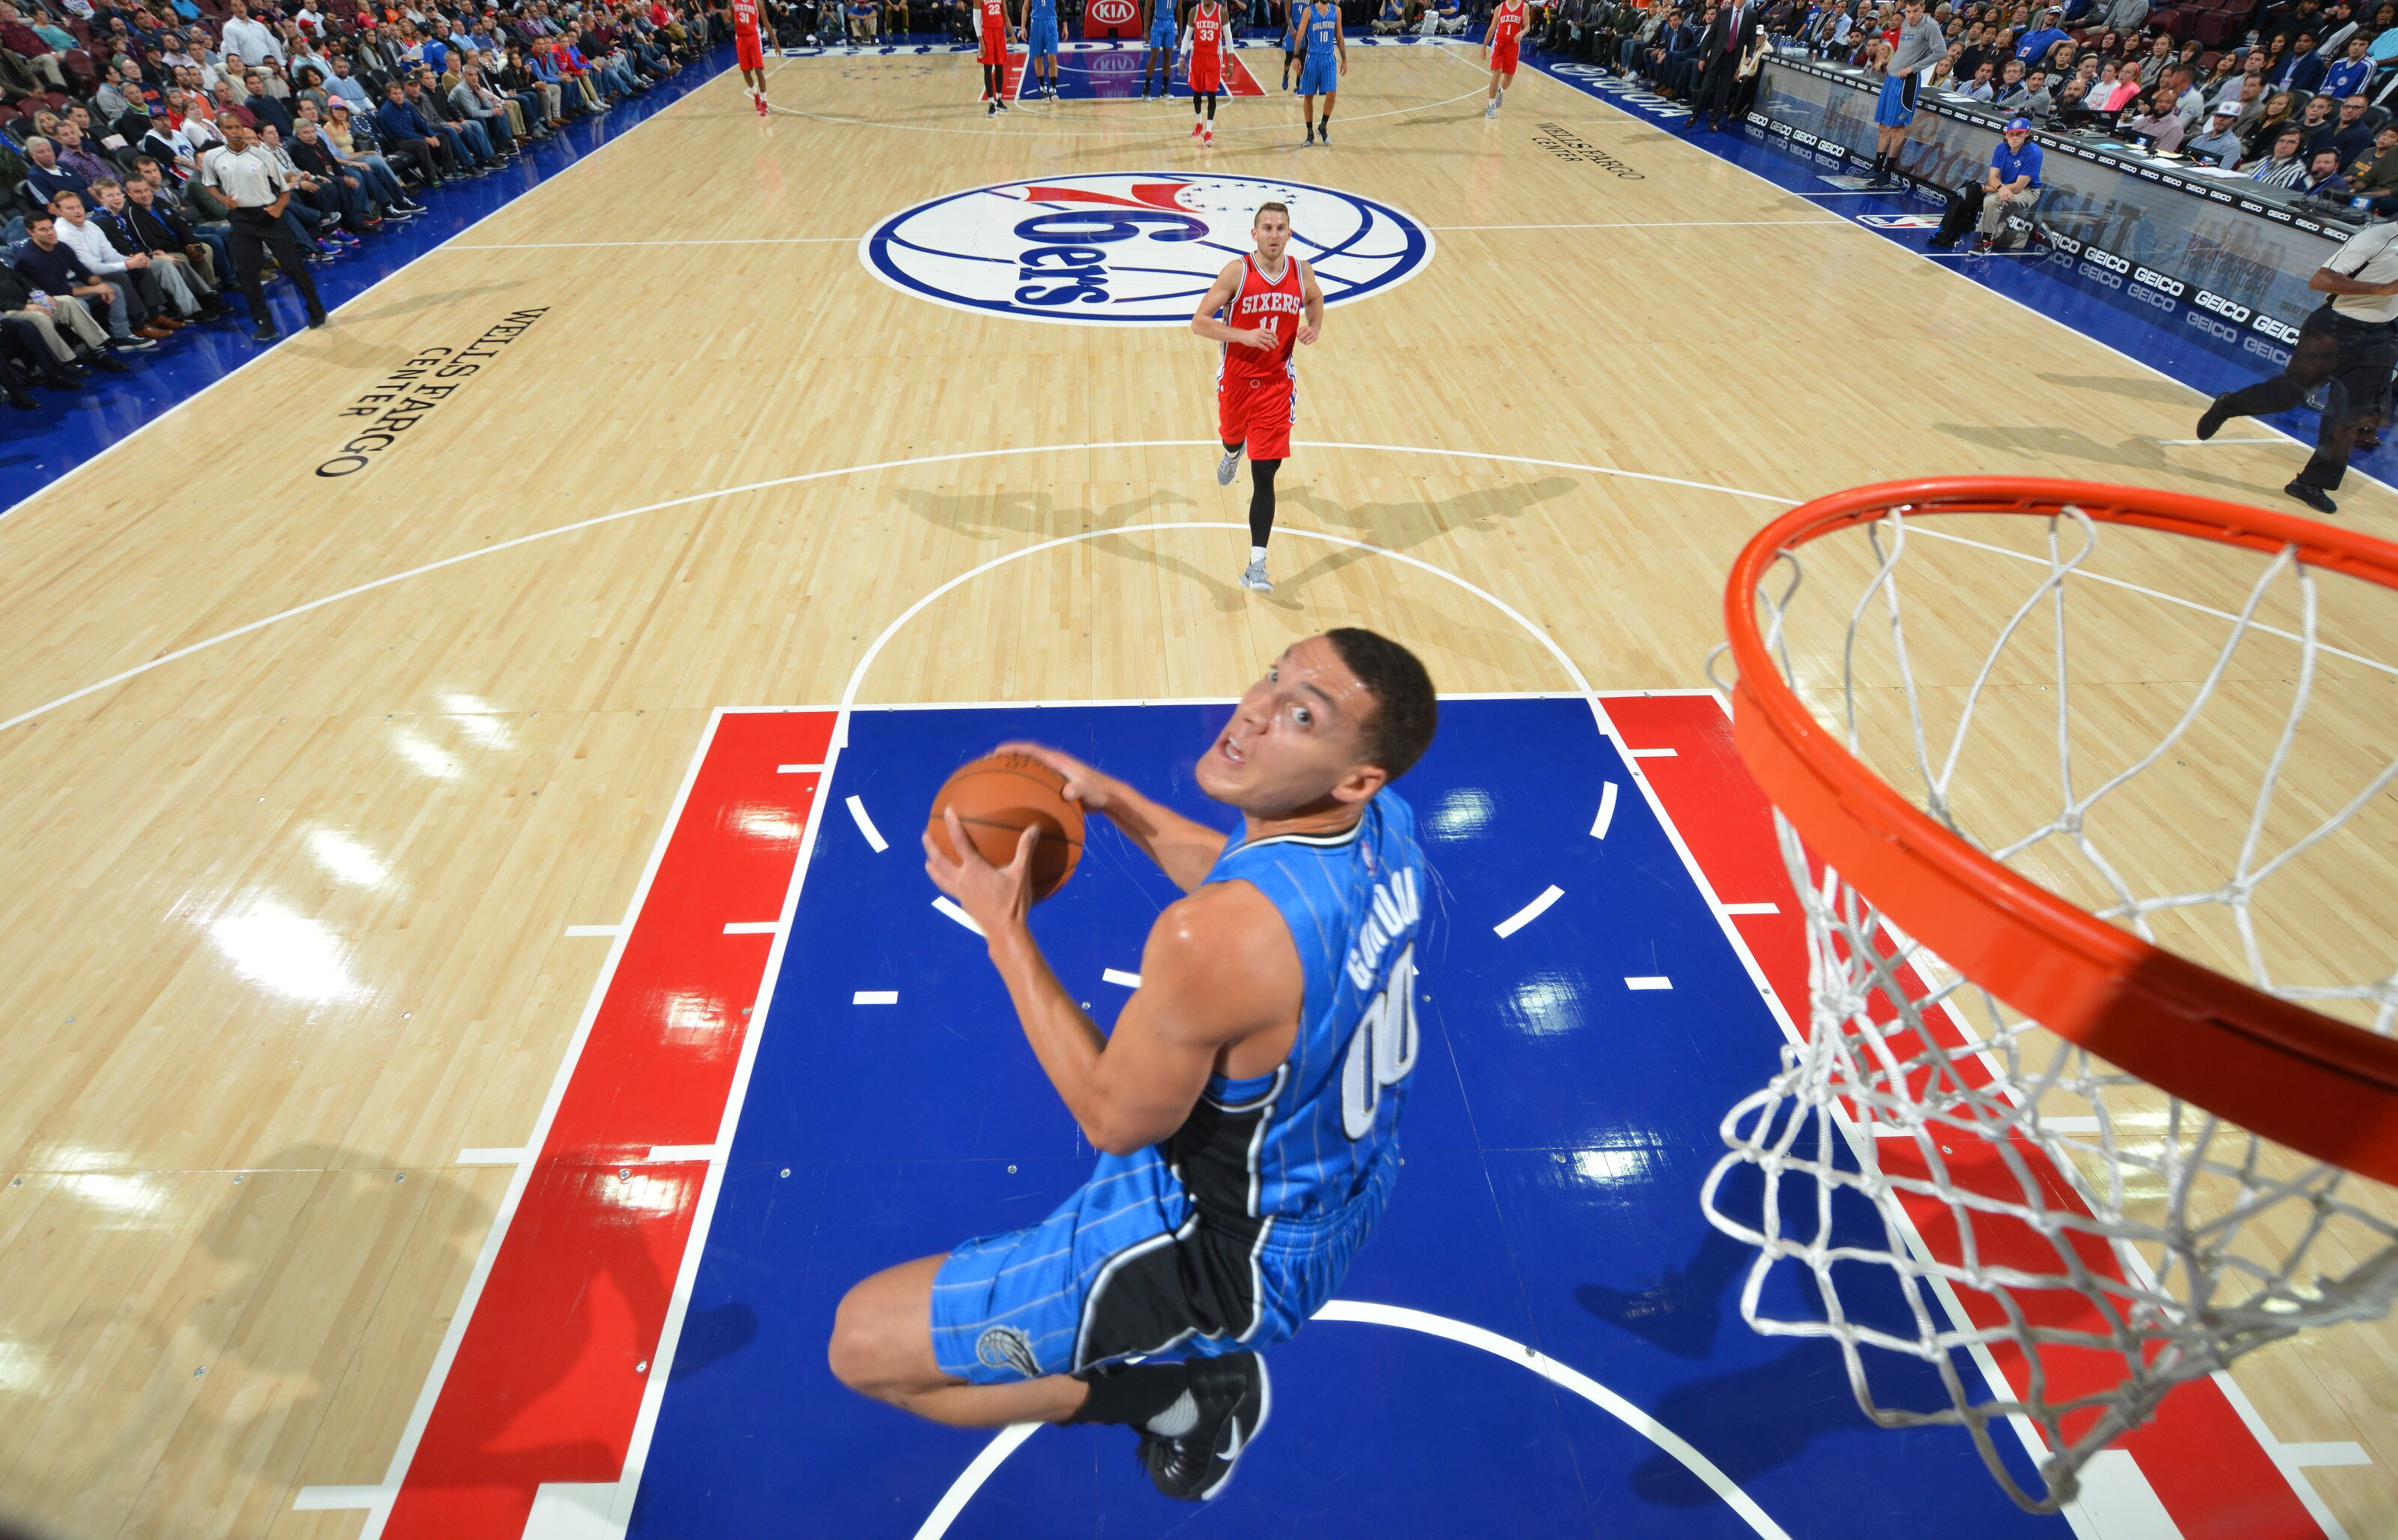 9cca443a747b23 Remembering when Orlando Magic forward Aaron Gordon jumped out of his shoe